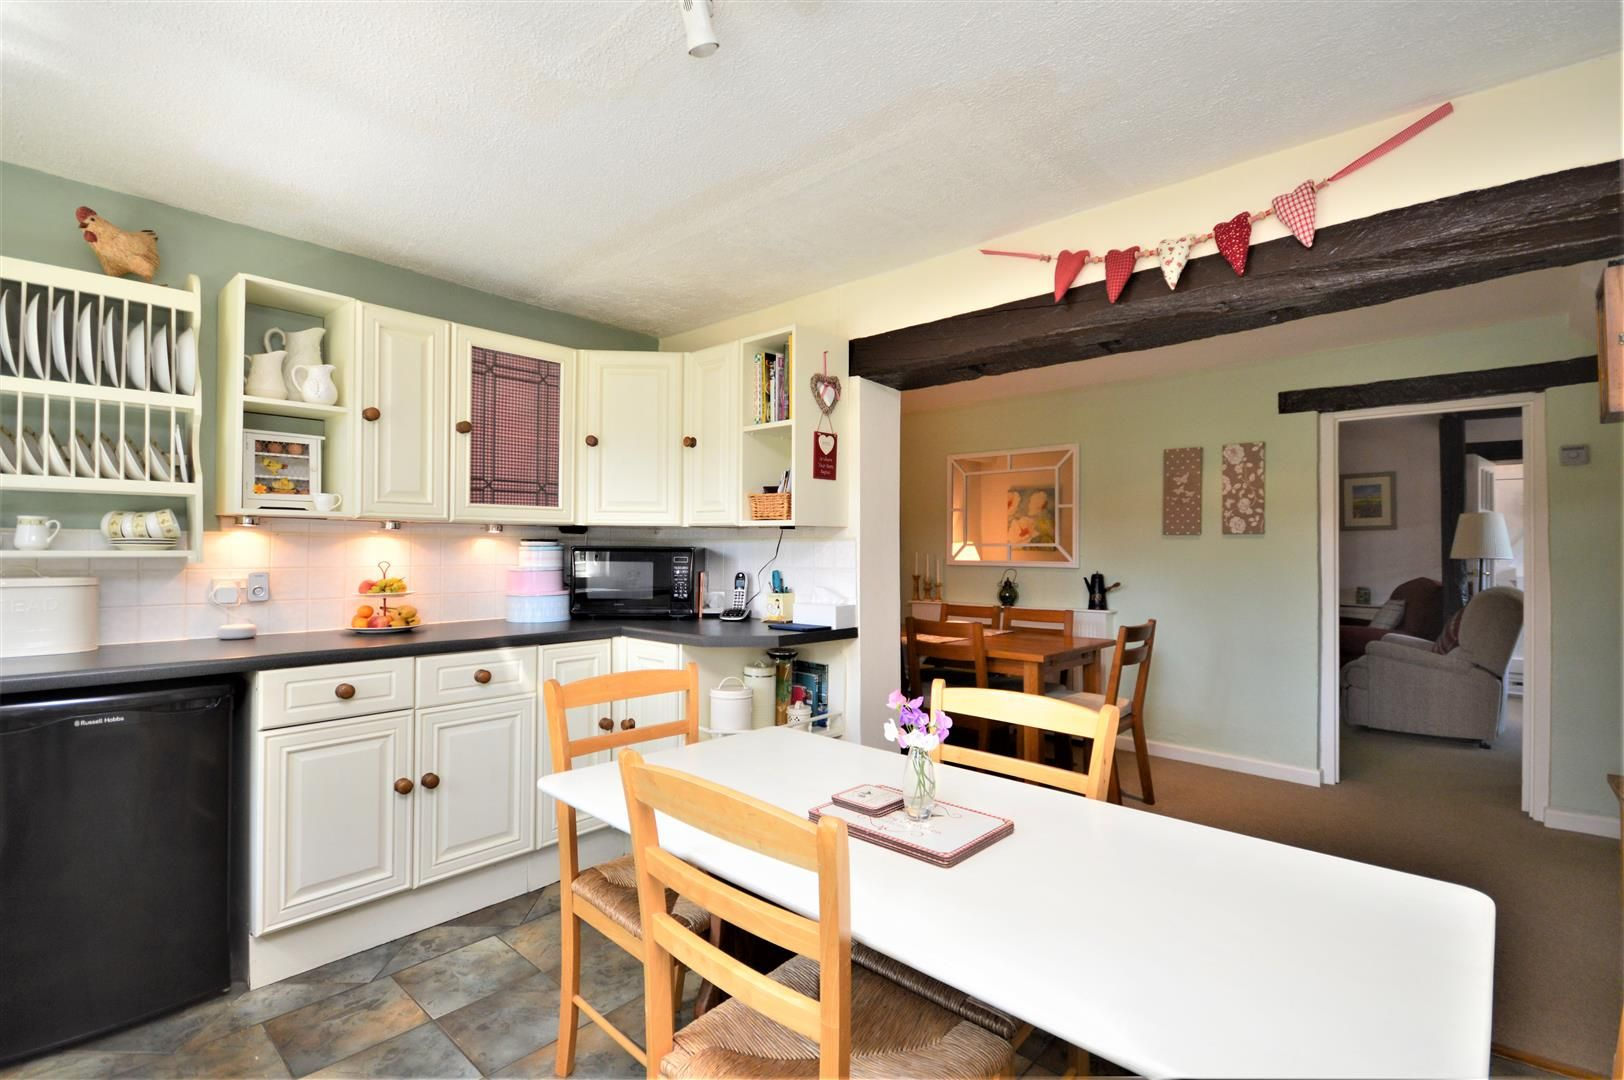 3 bed semi-detached for sale in Madley  - Property Image 6